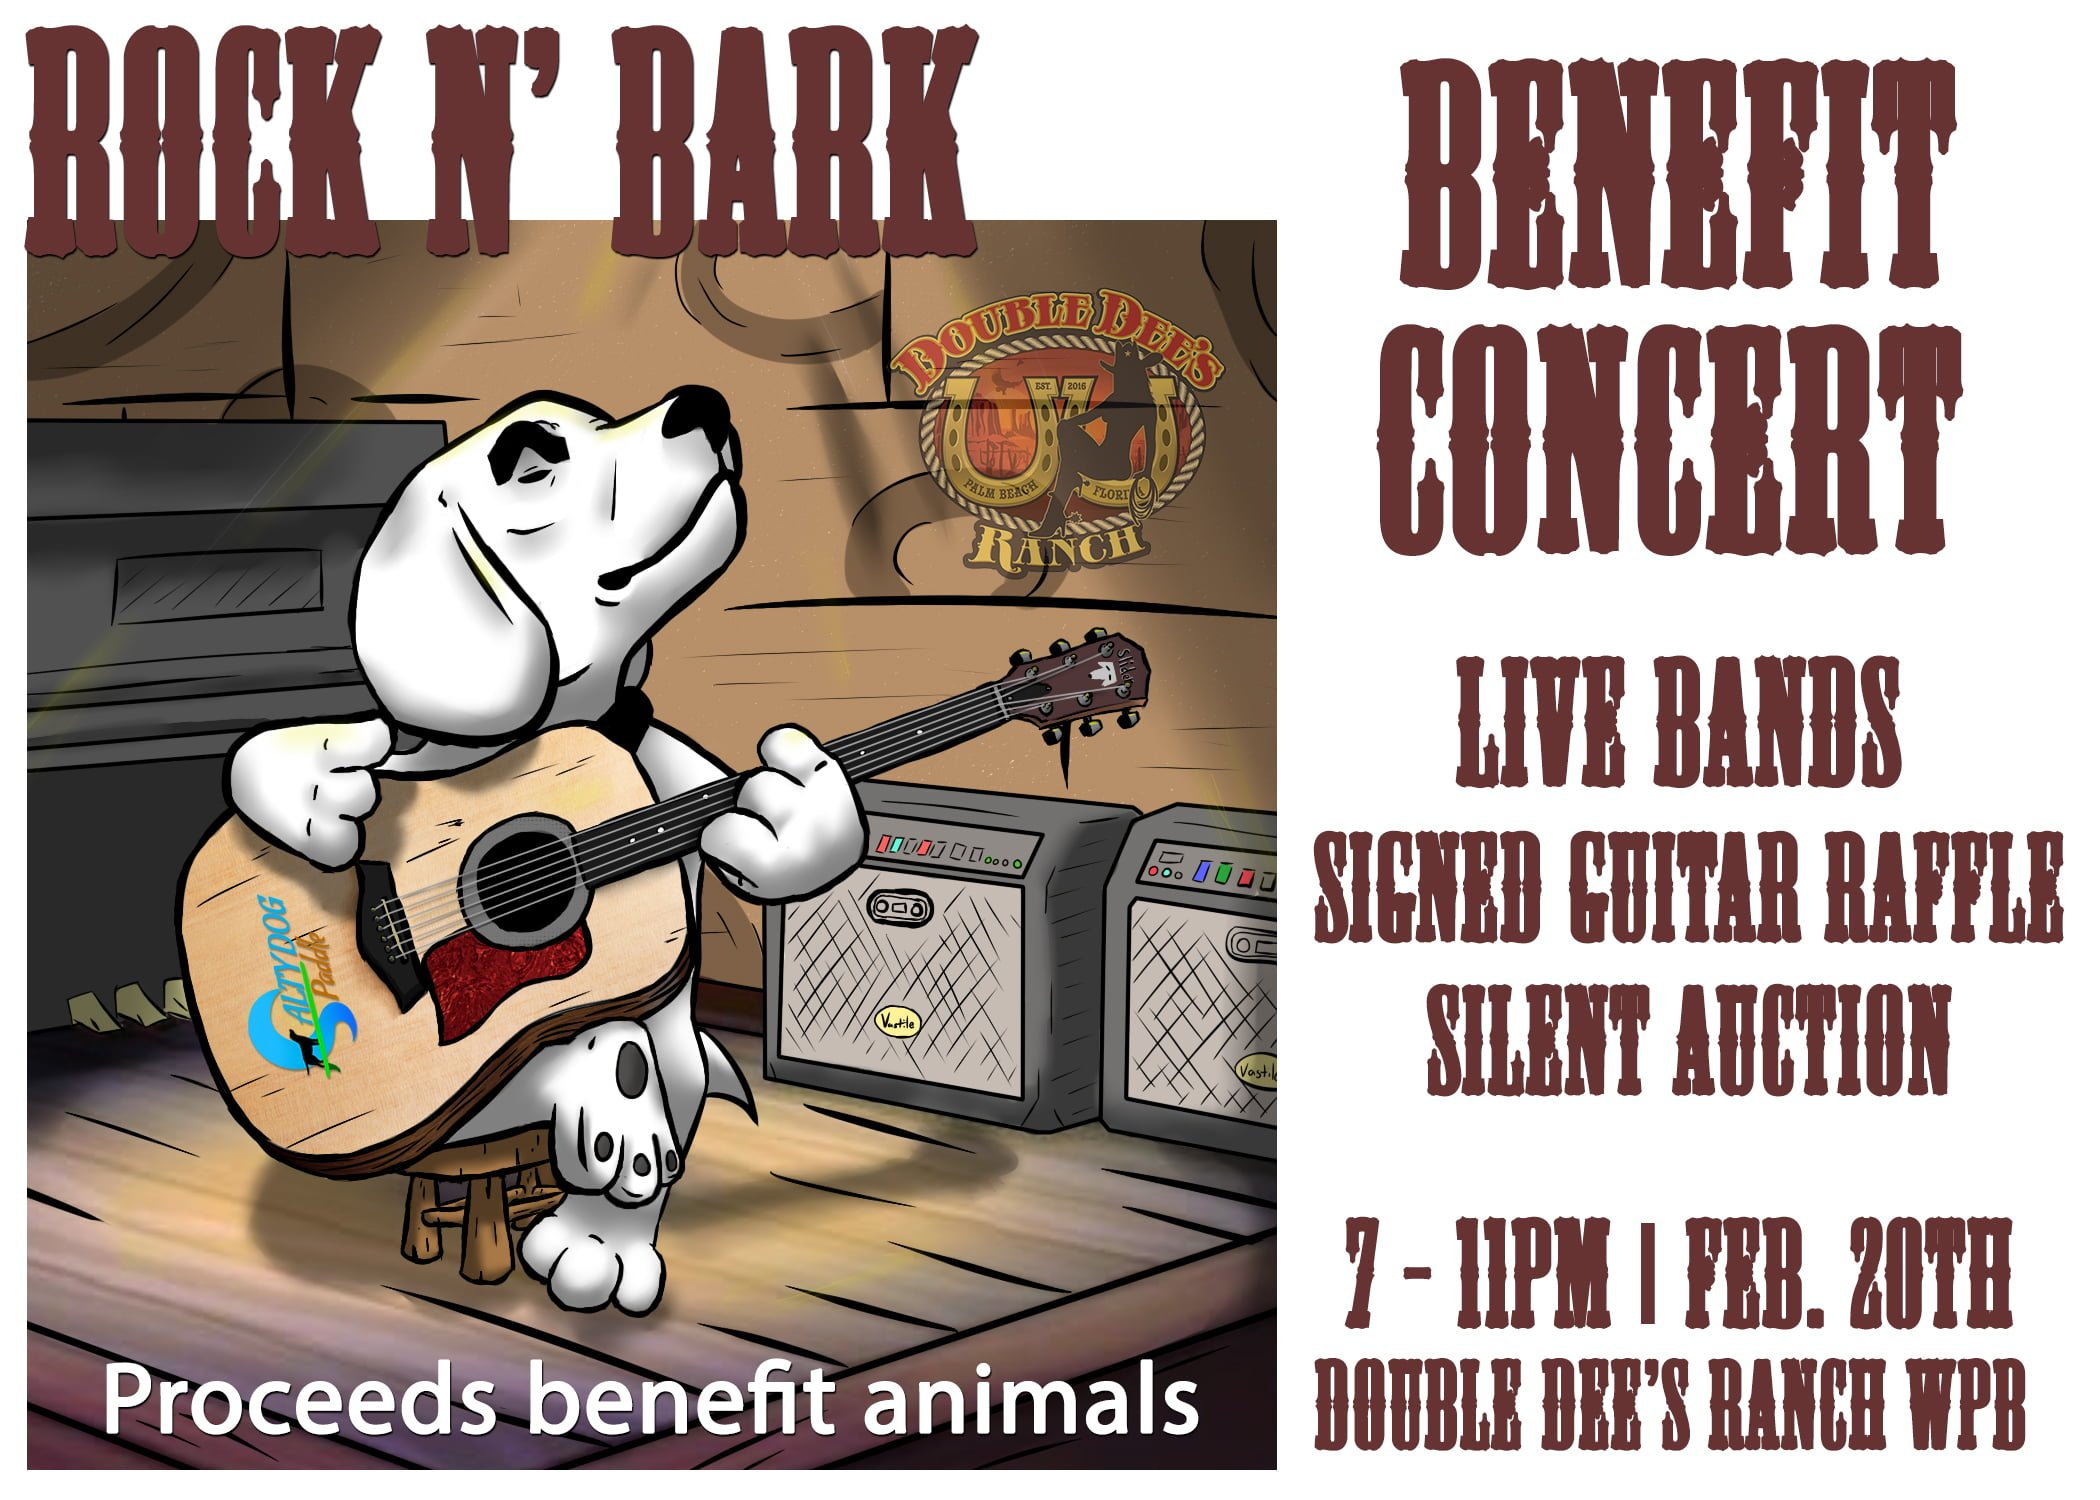 Rock n Bark Benefit Concert